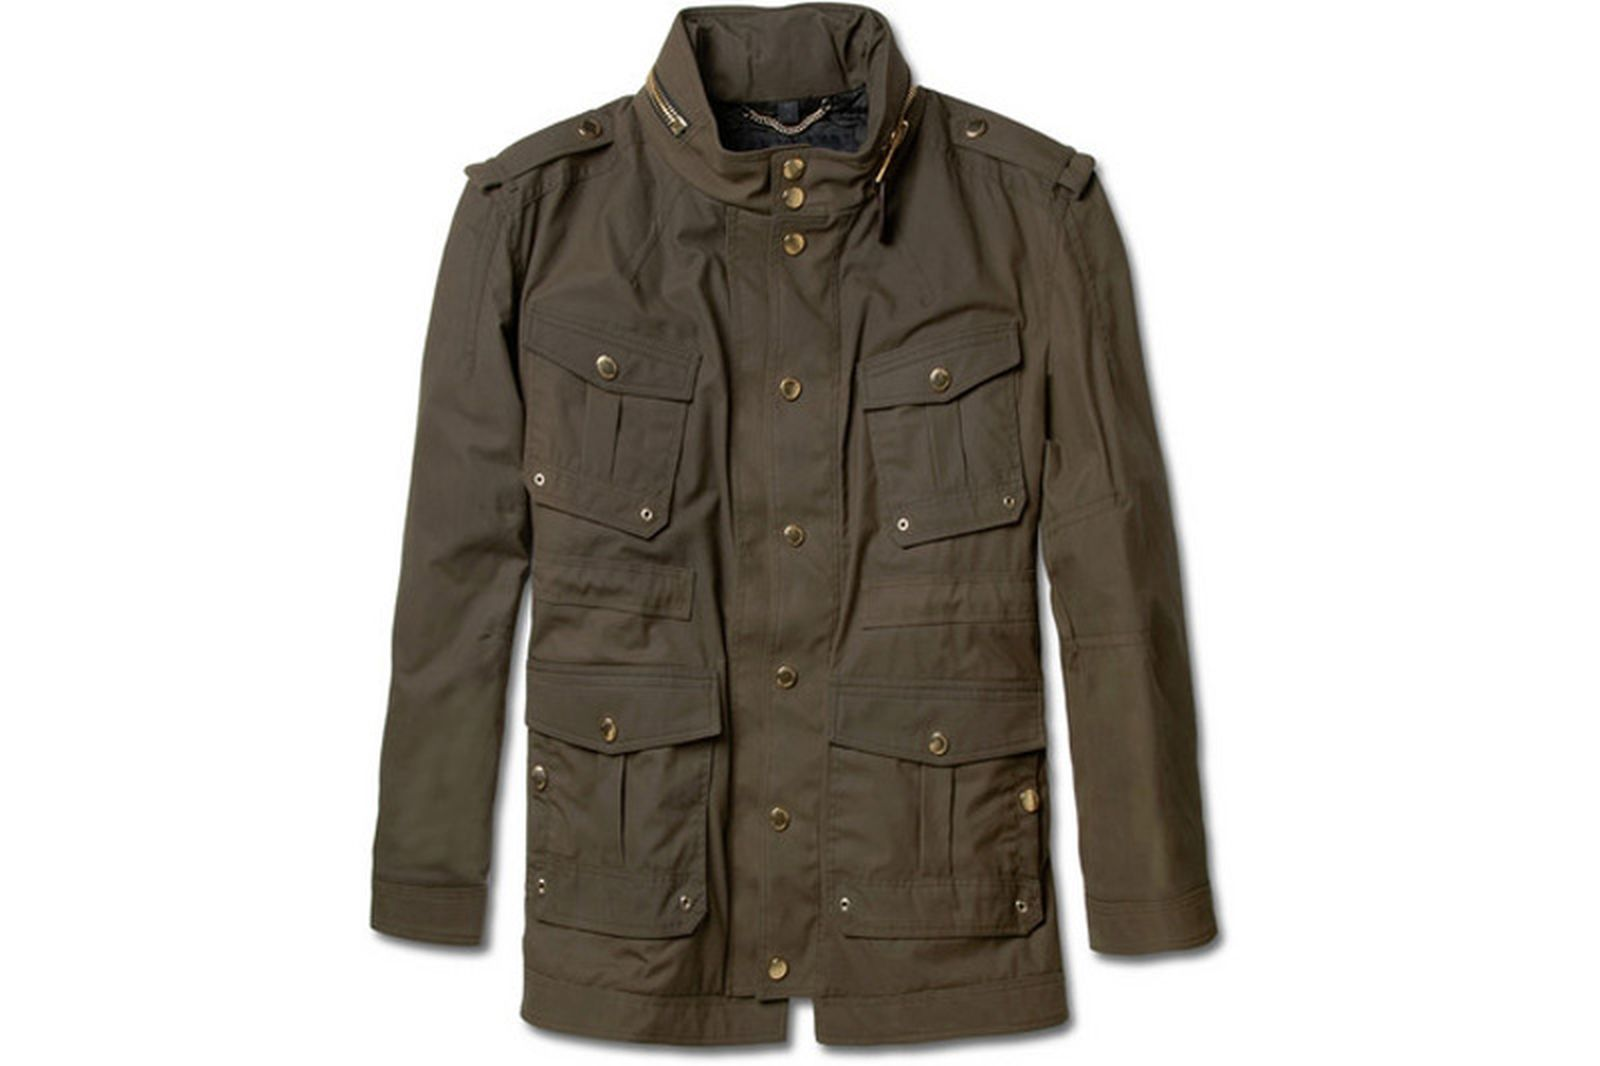 Burberry-Porsum-Waxed-Cotton-Field-Jacket